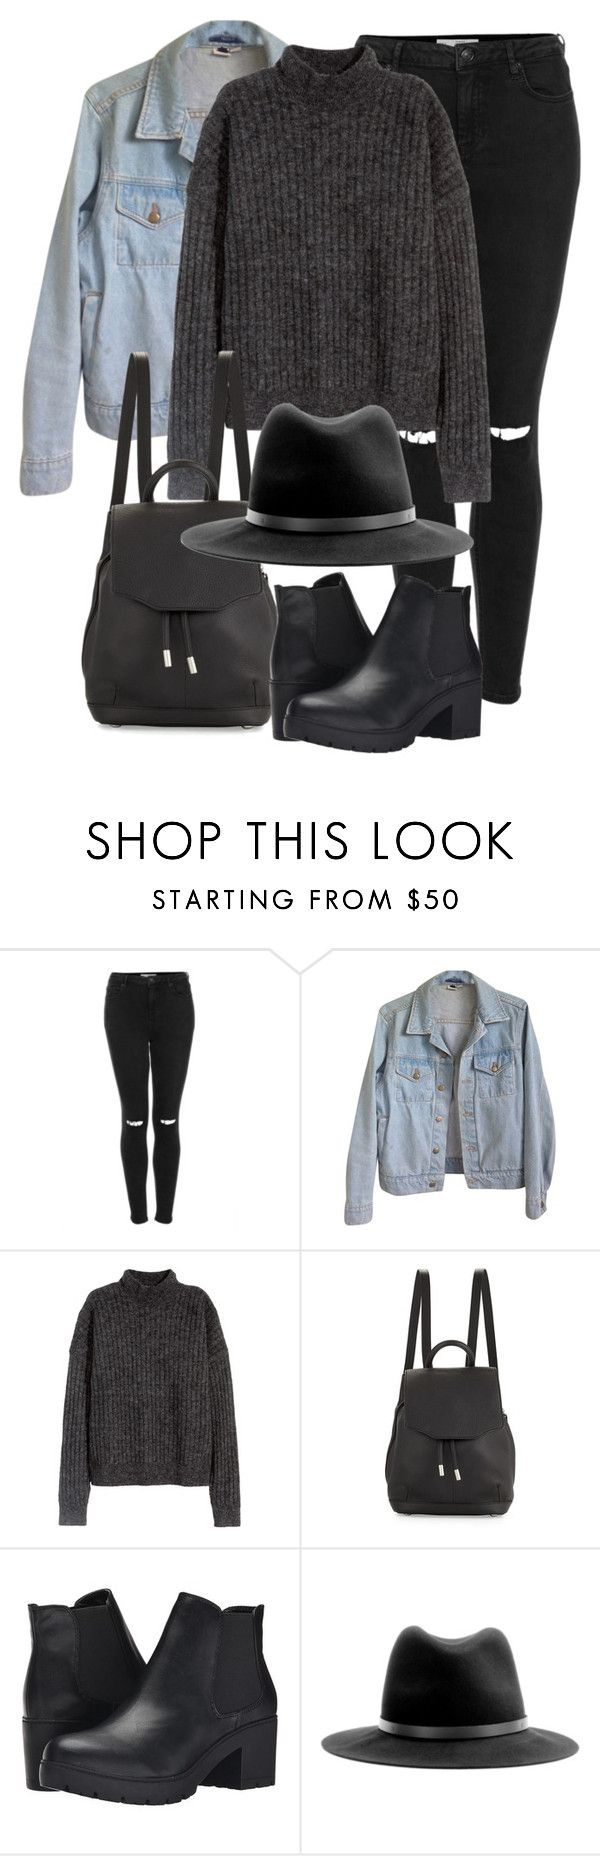 """""""Untitled #2161"""" by annielizjung ❤ liked on Polyvore featuring Topshop, American Apparel, H&M, rag & bone and Steve Madden"""